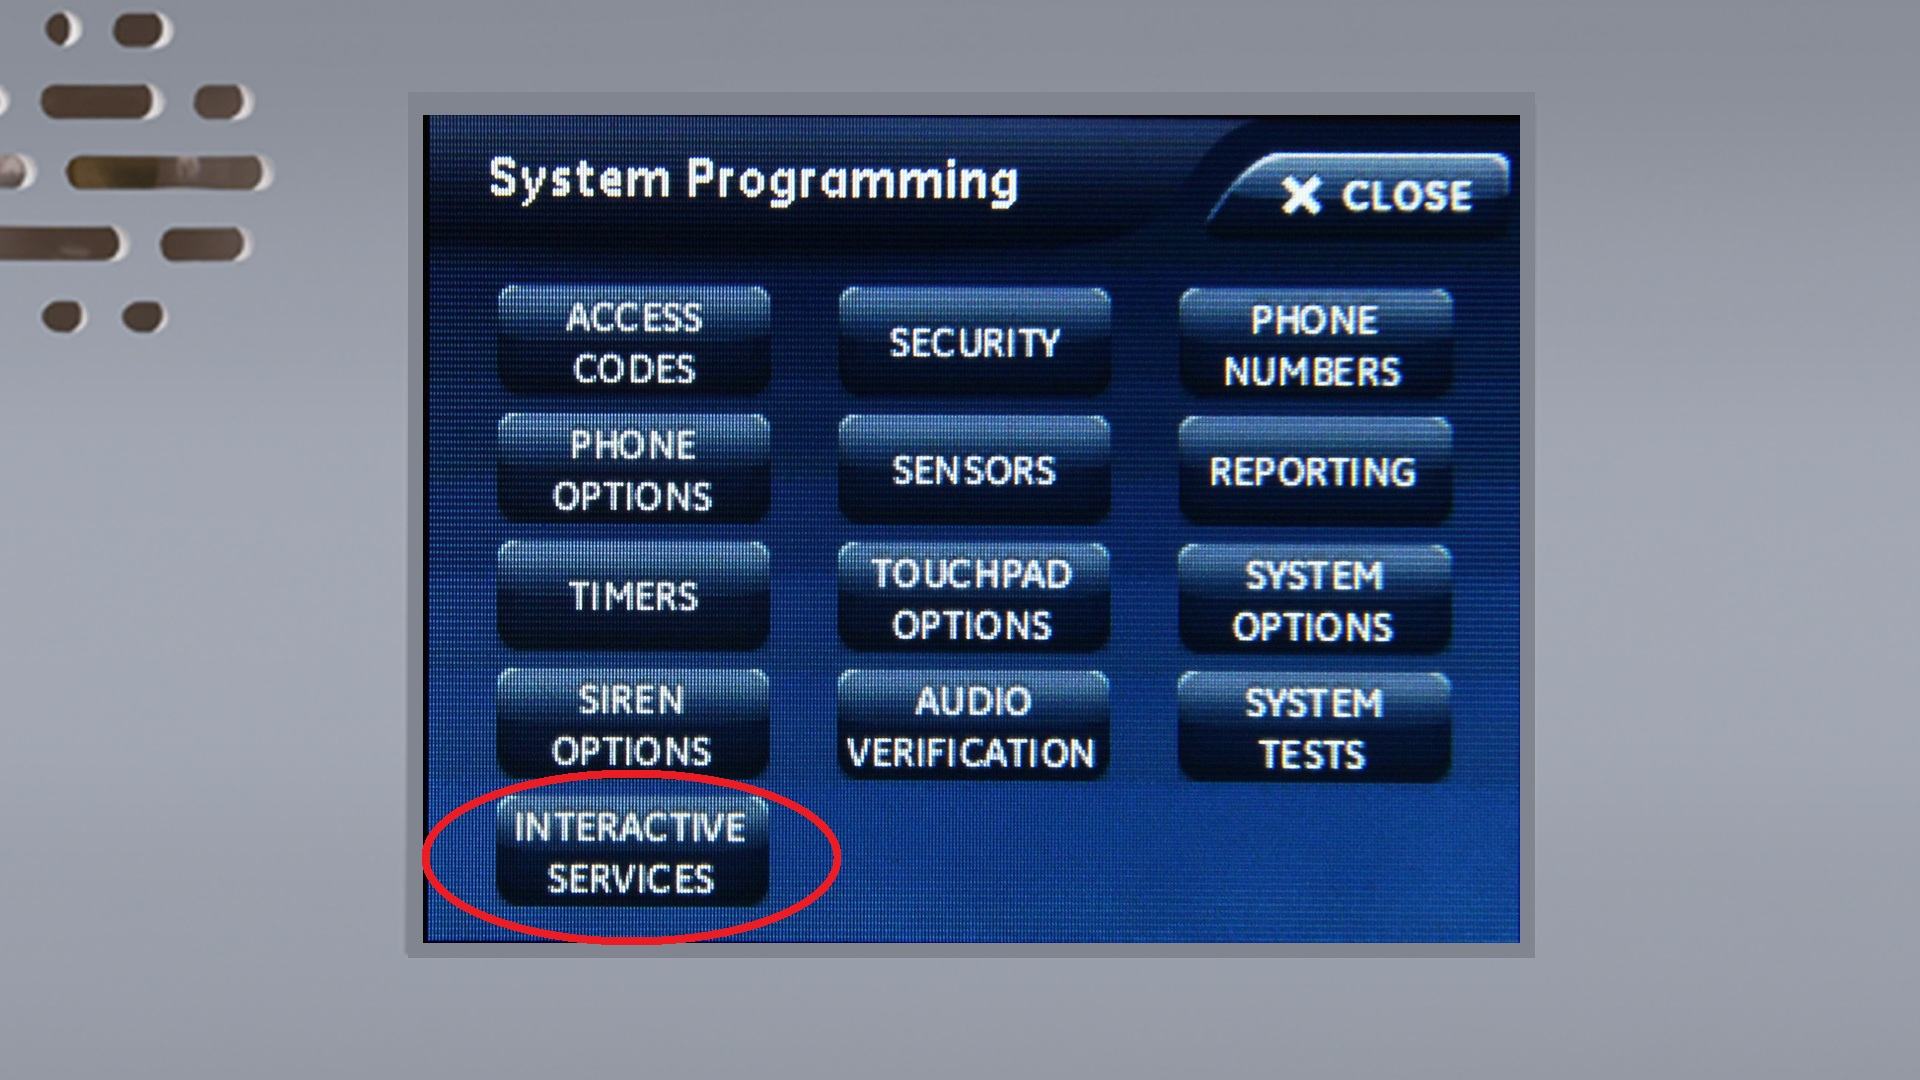 Programming_interactive_services_circled.jpg